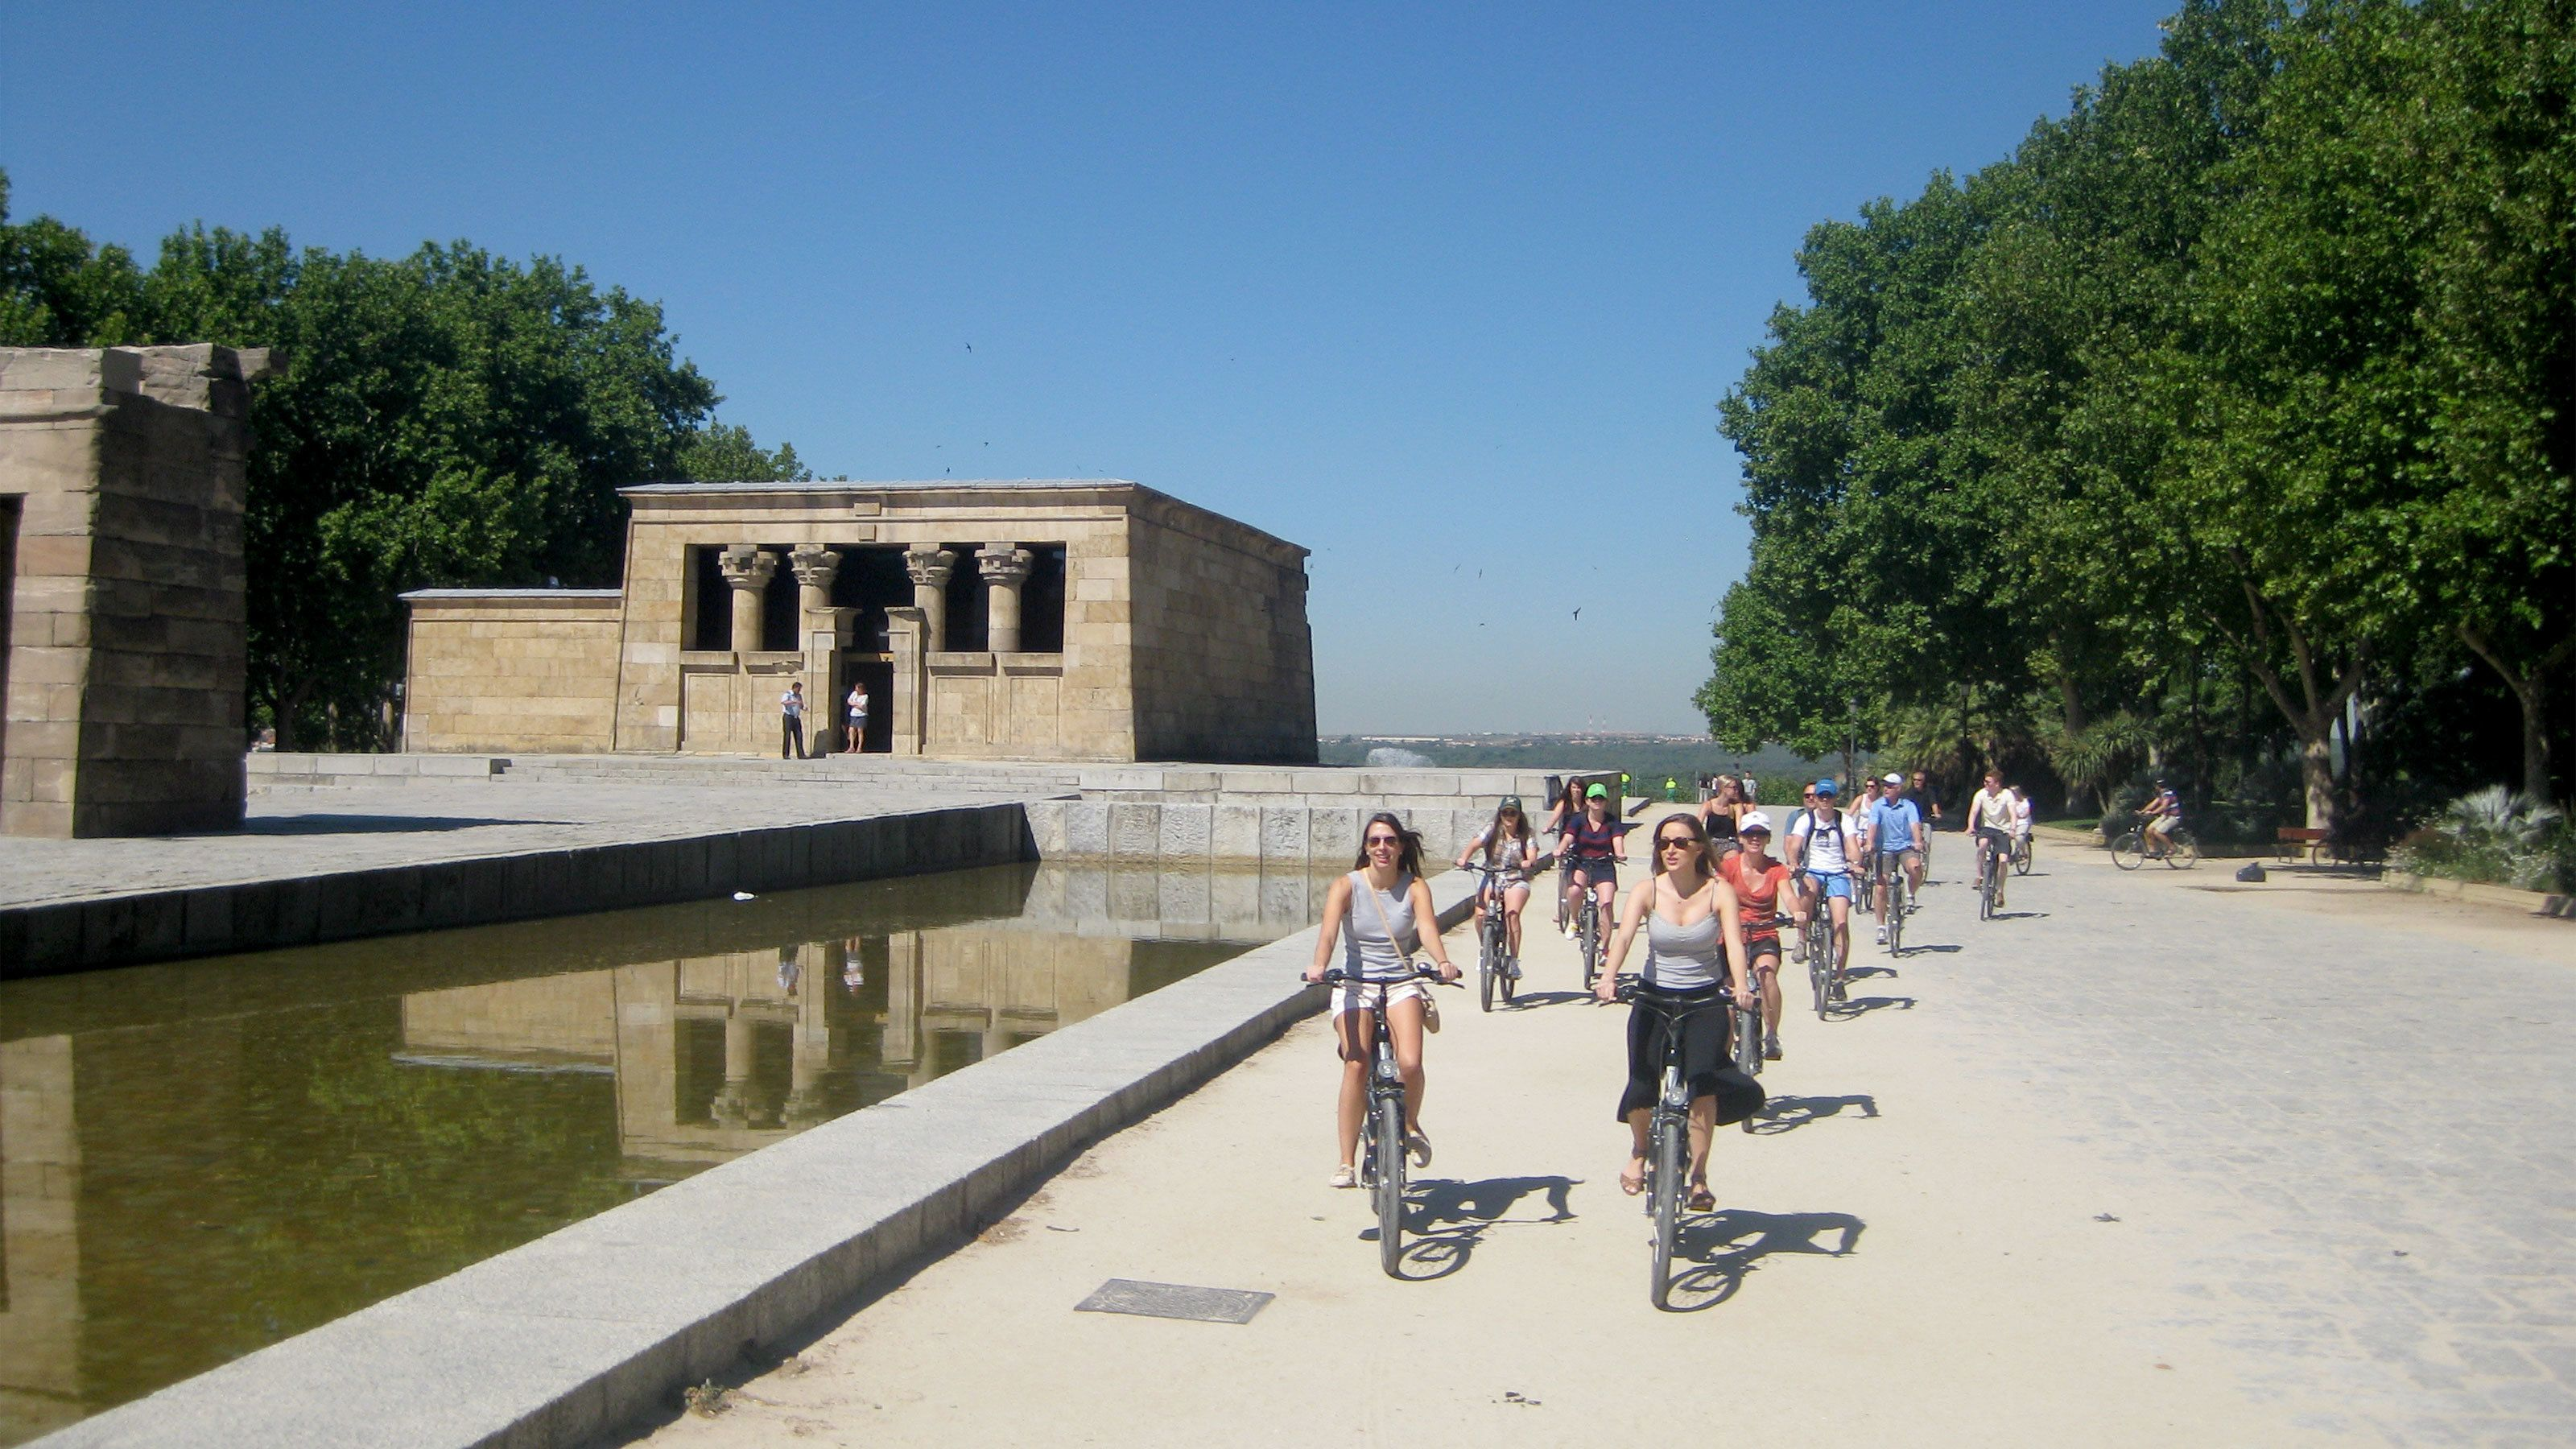 Group of bicyclists riding through the Temple of Debod which is an Egyptian temple in Madrid